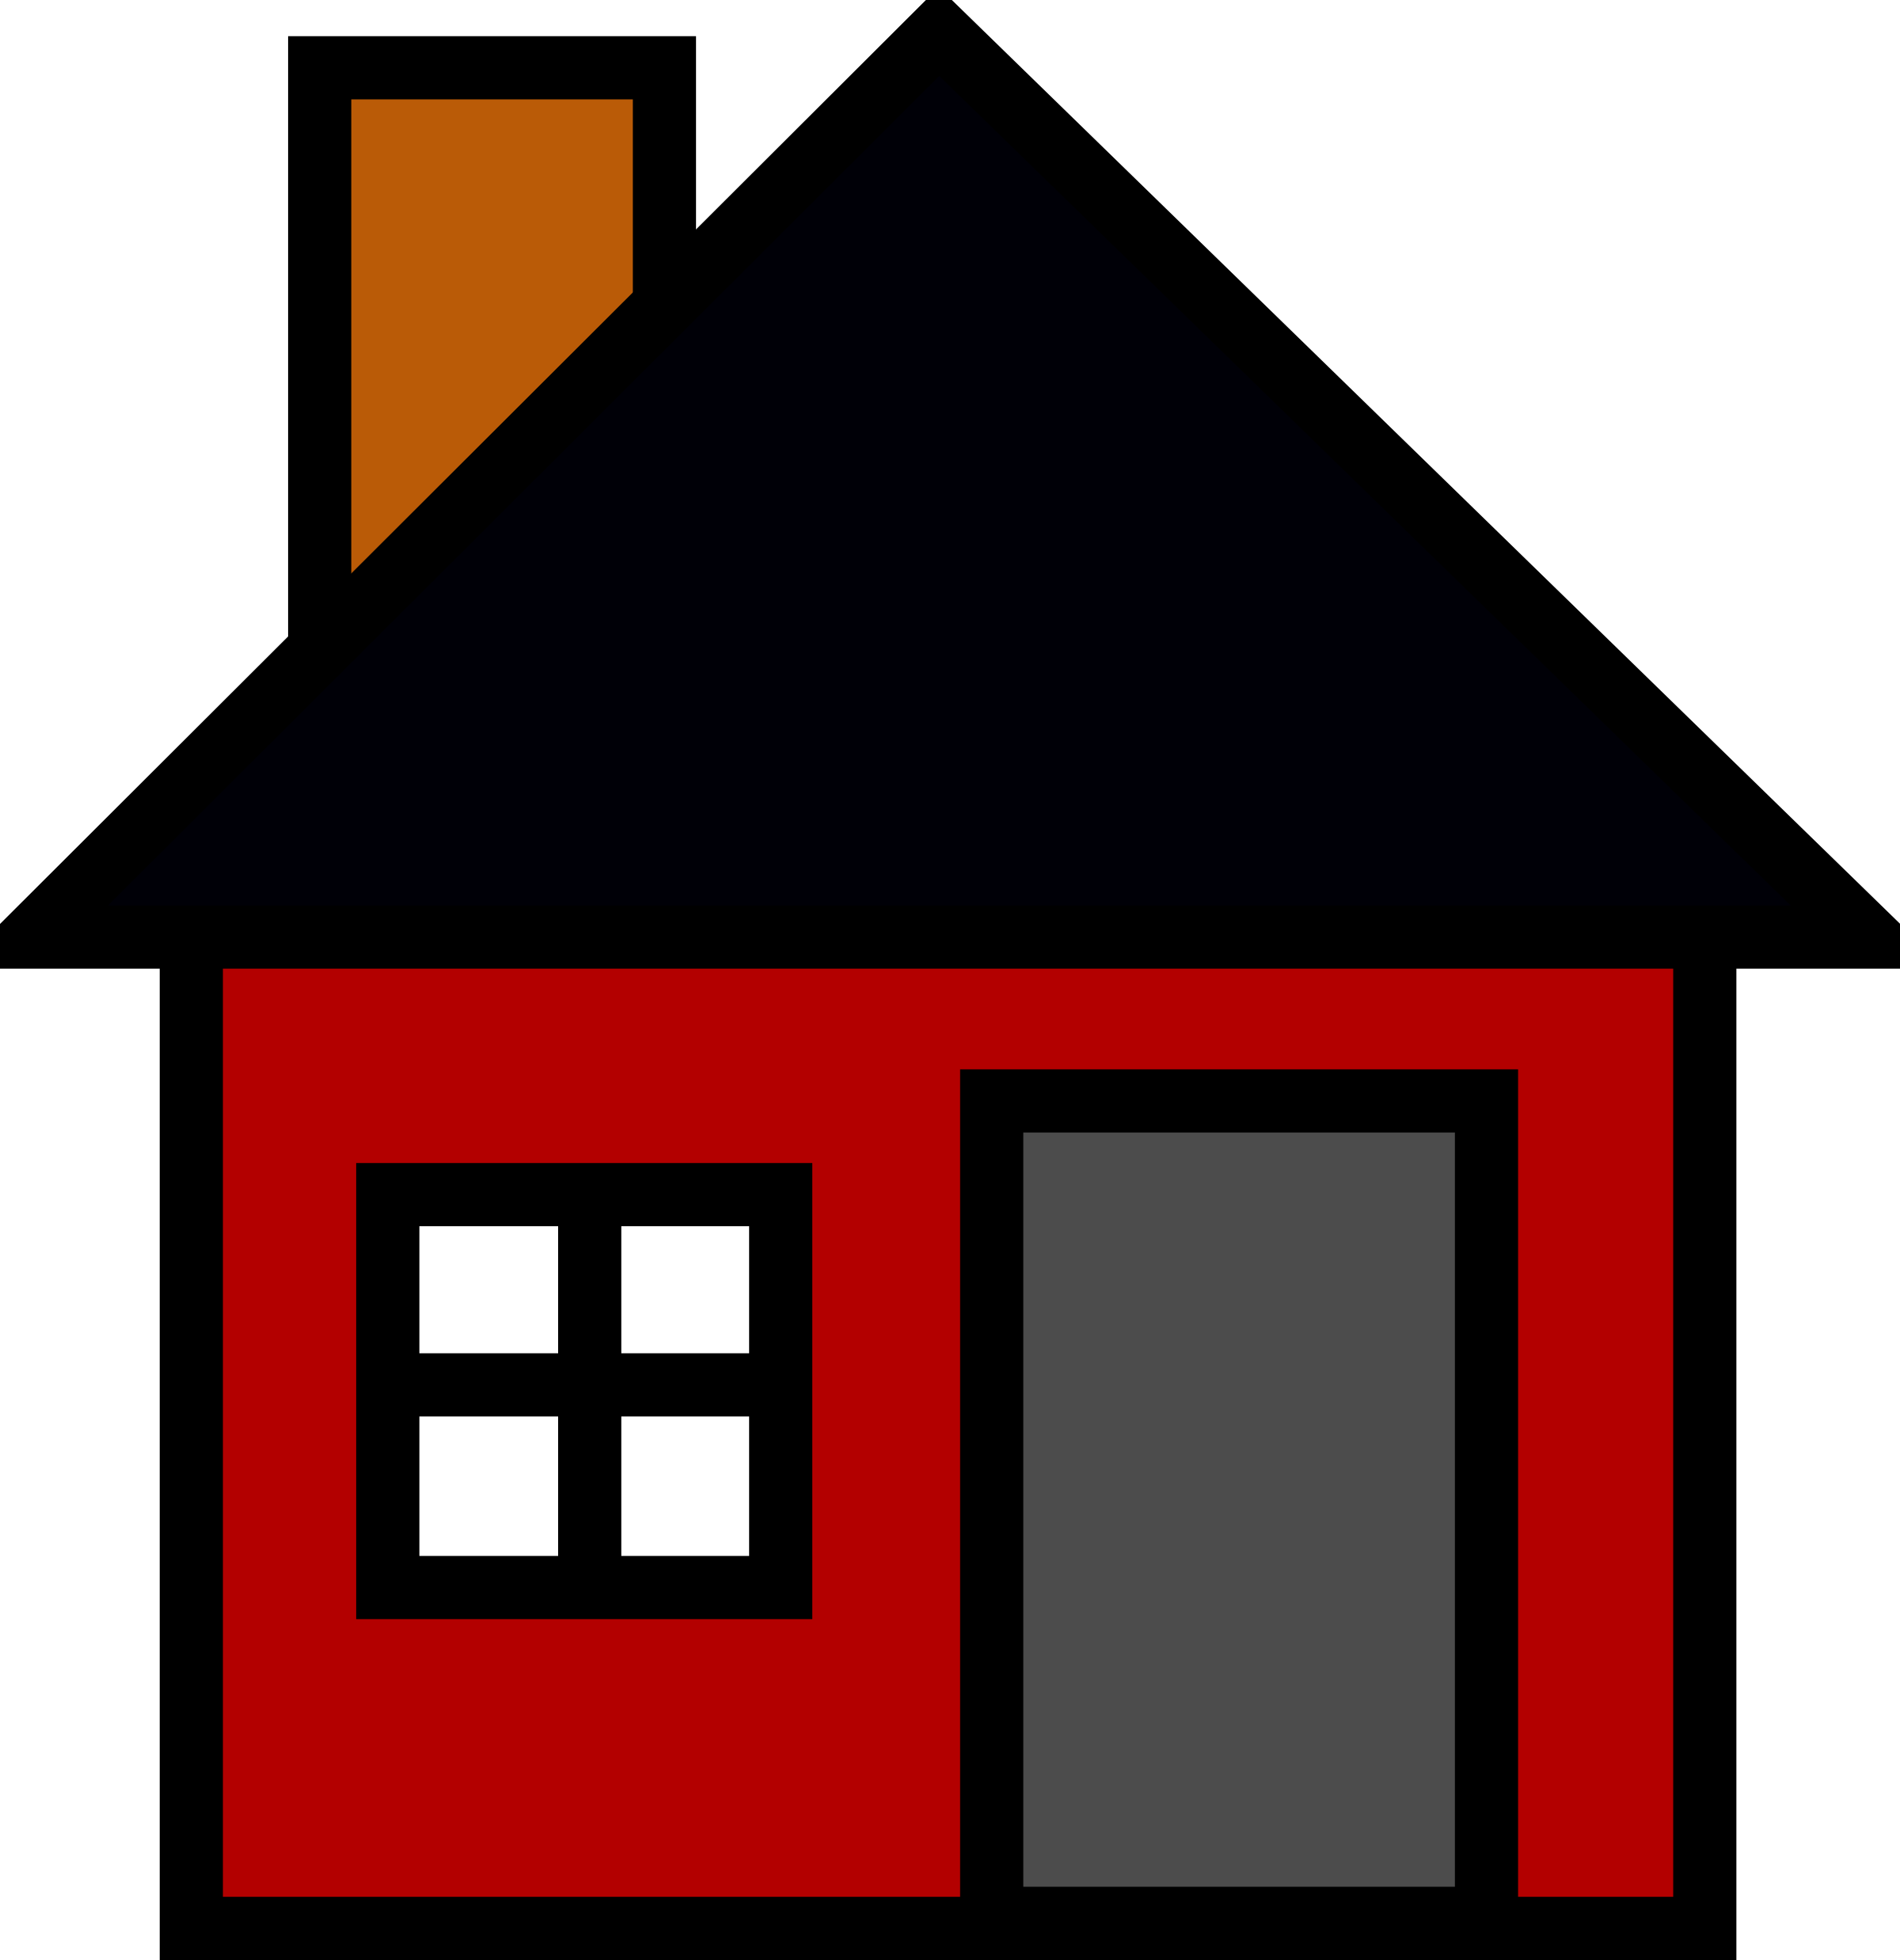 Home clipart animated. Small house big image